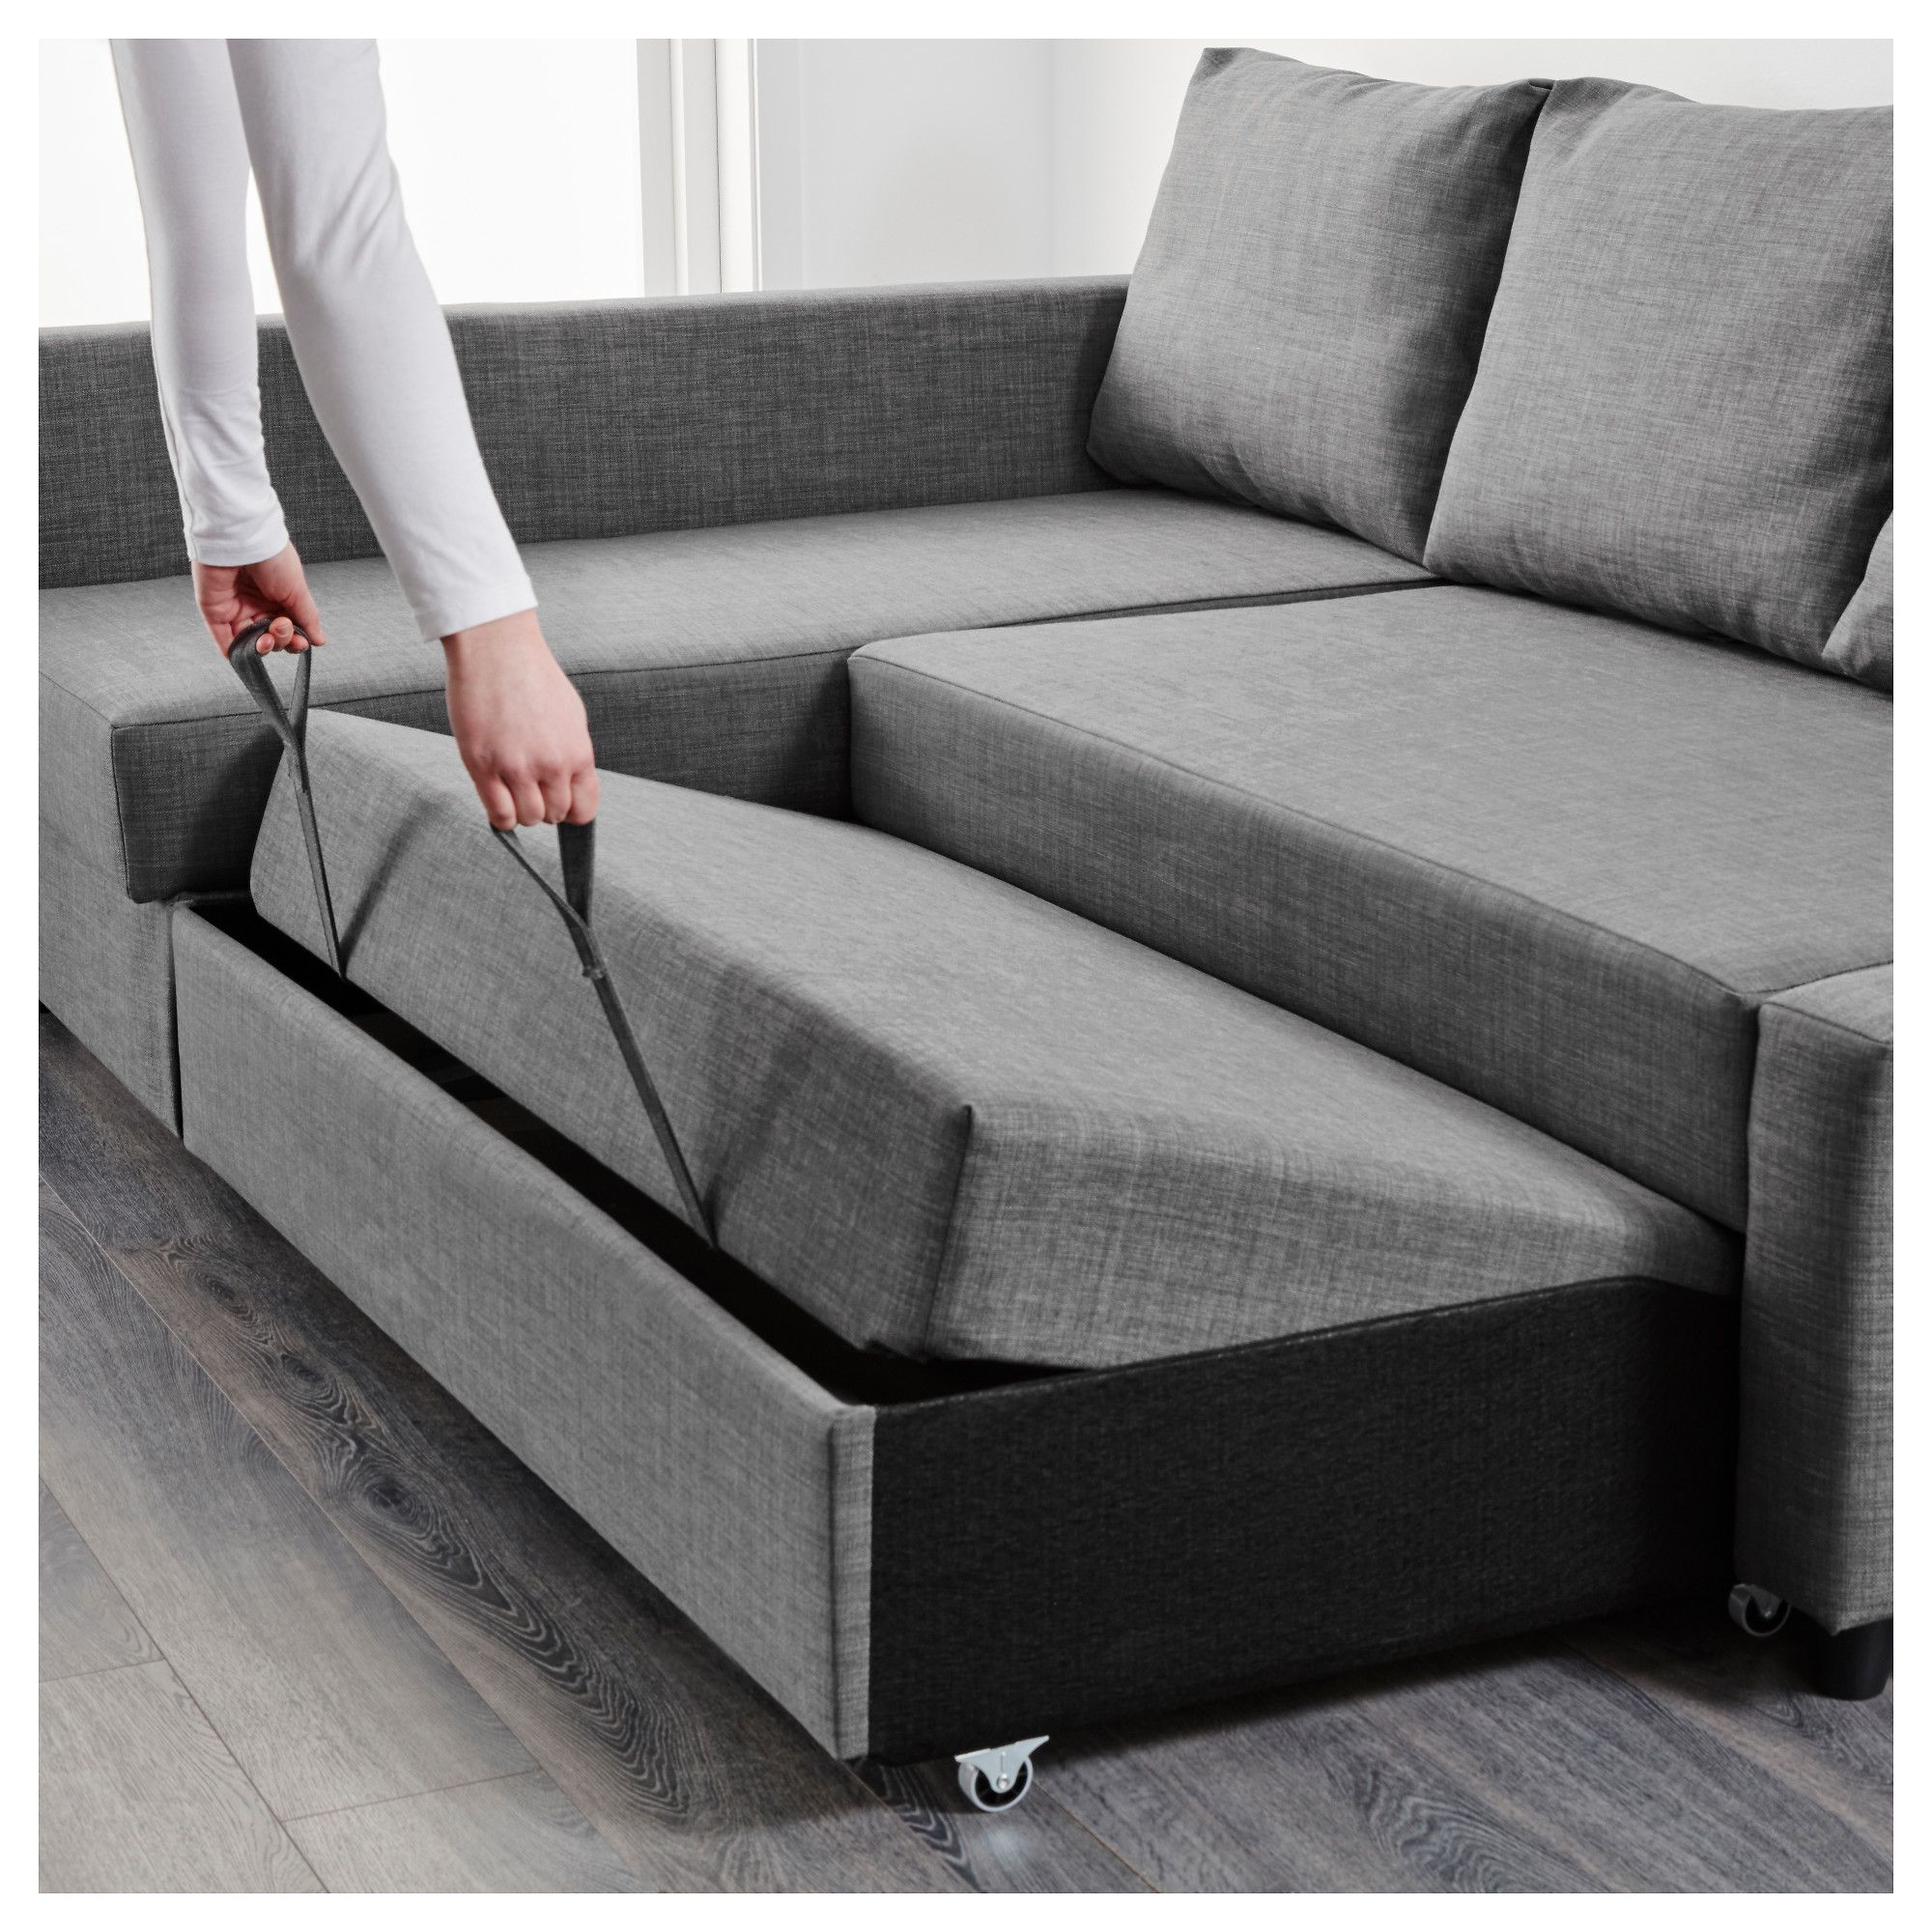 Chair That Converts To A Bed Sofa Converts To Bed Sofa Convertible Furniture Castro